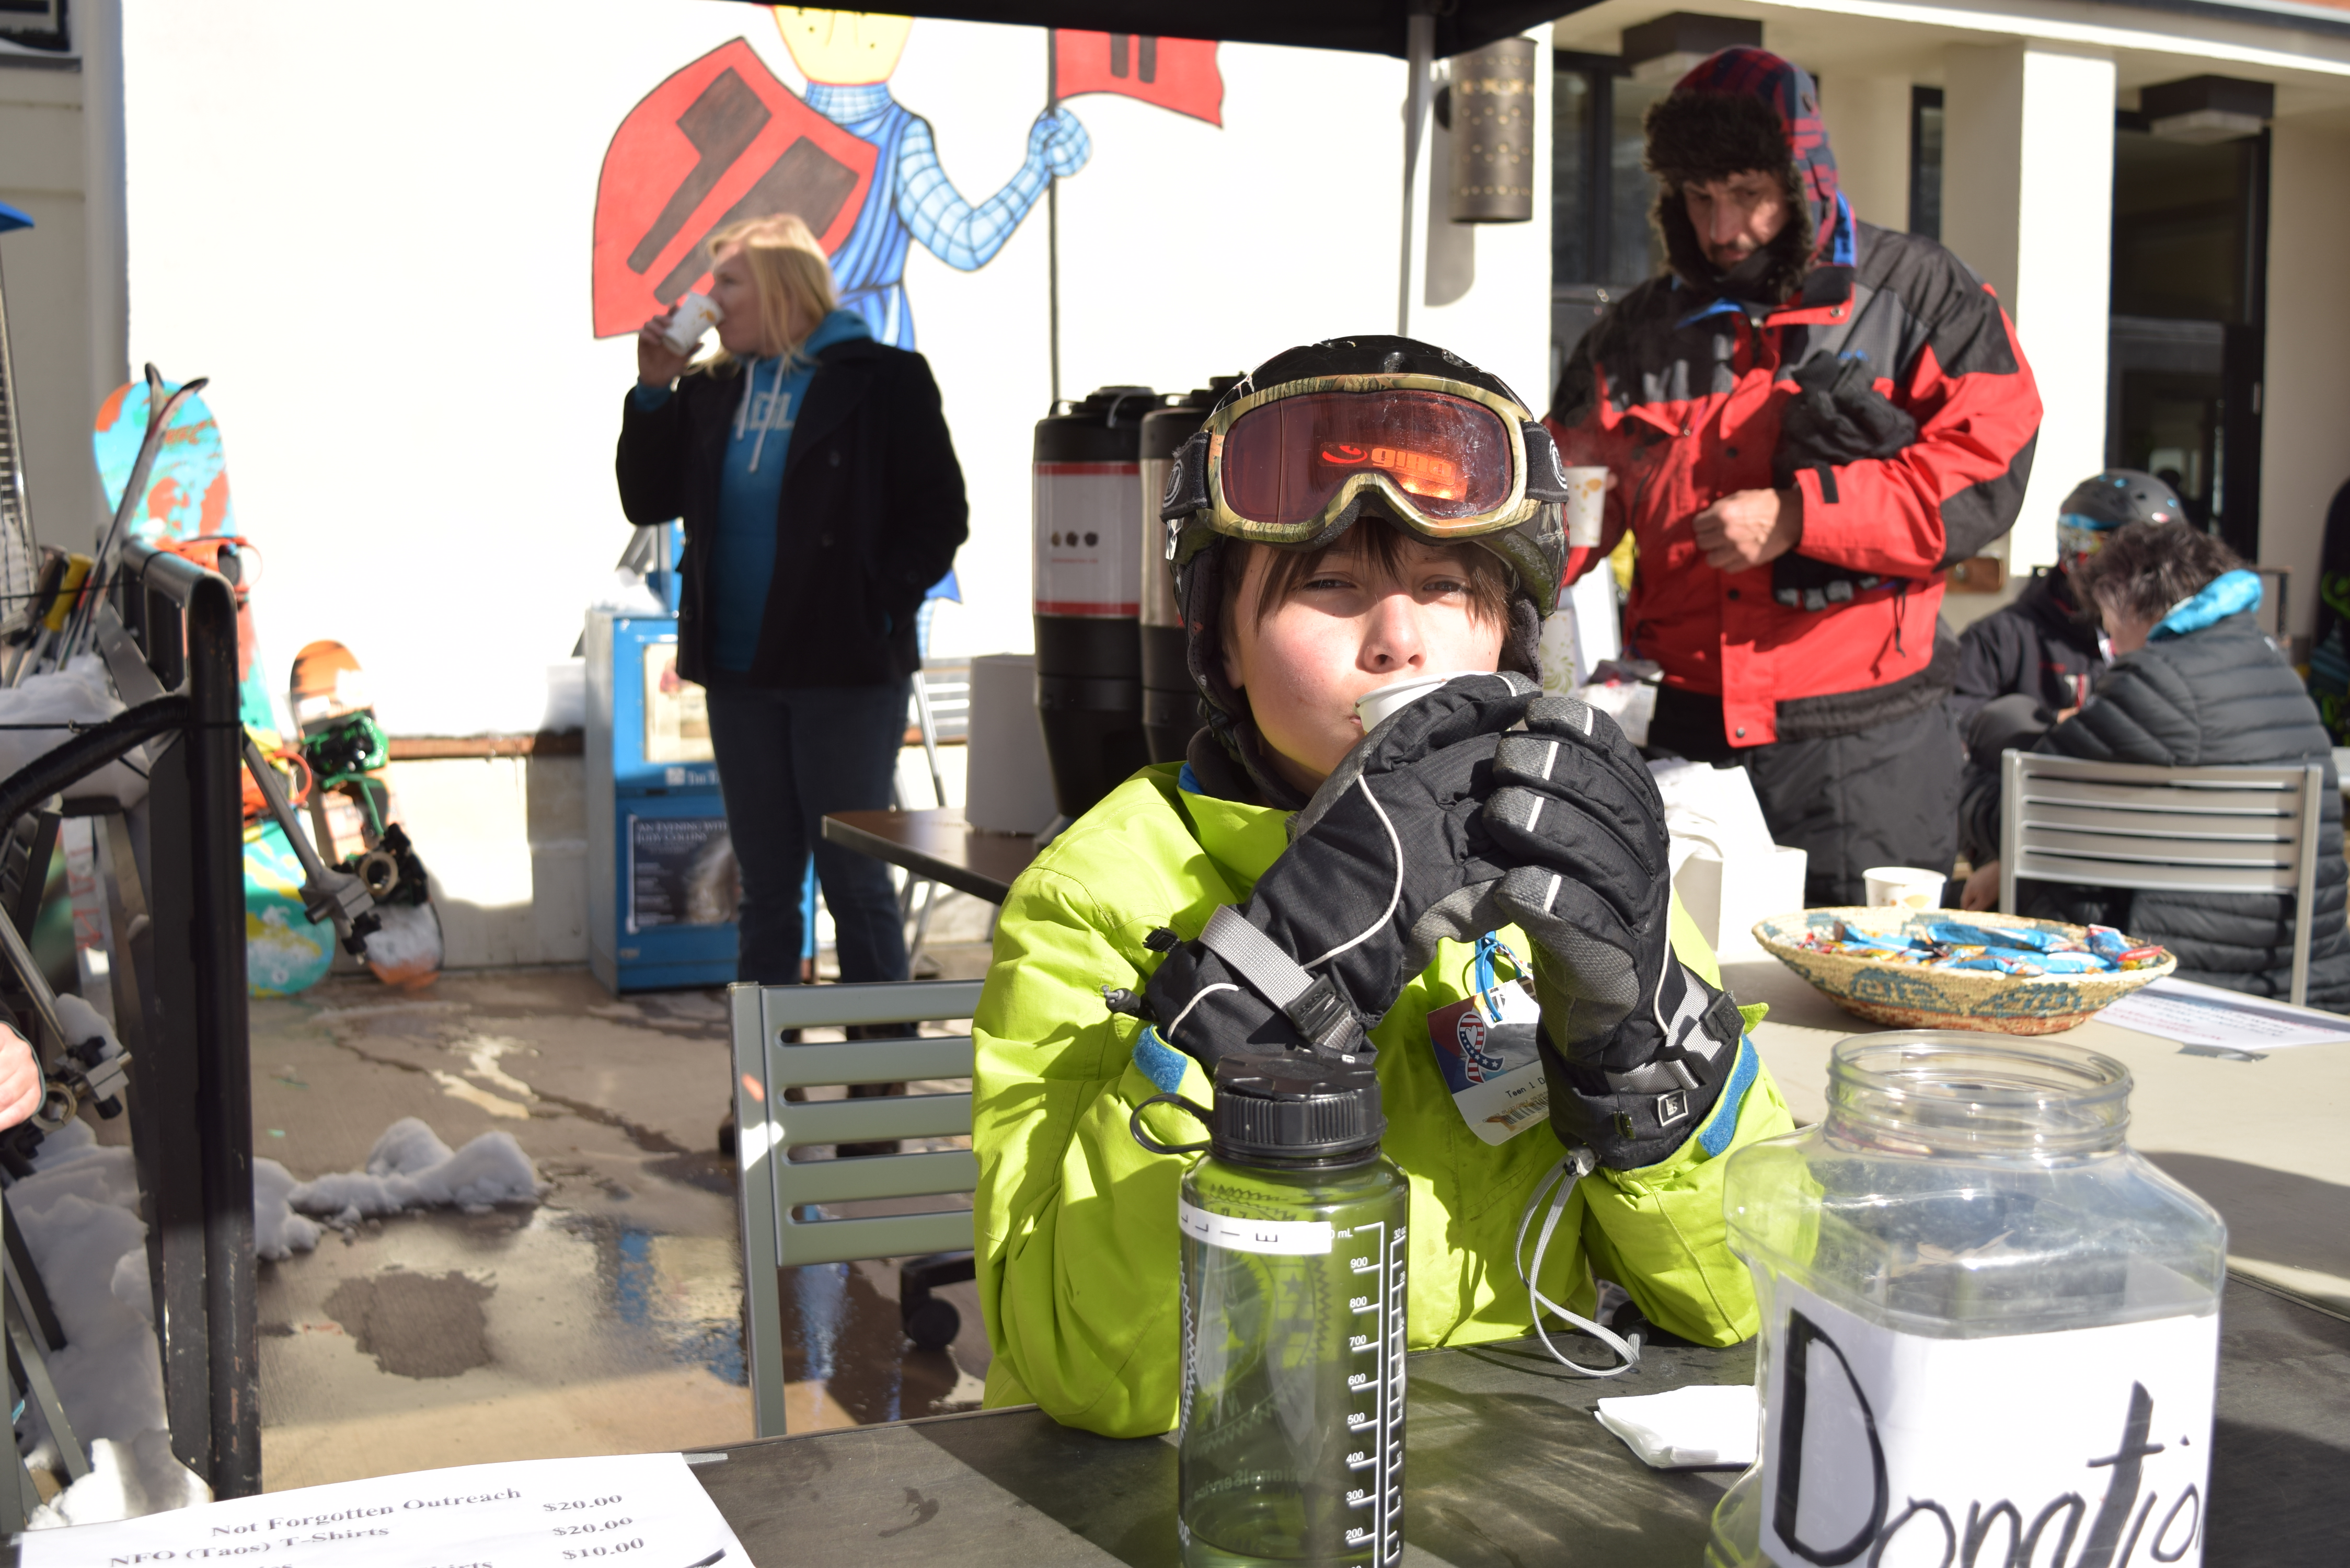 Young skier in bright yellow jacket and gloves sipping a drink at a donation table at Taos Ski Valley, other skiers milling